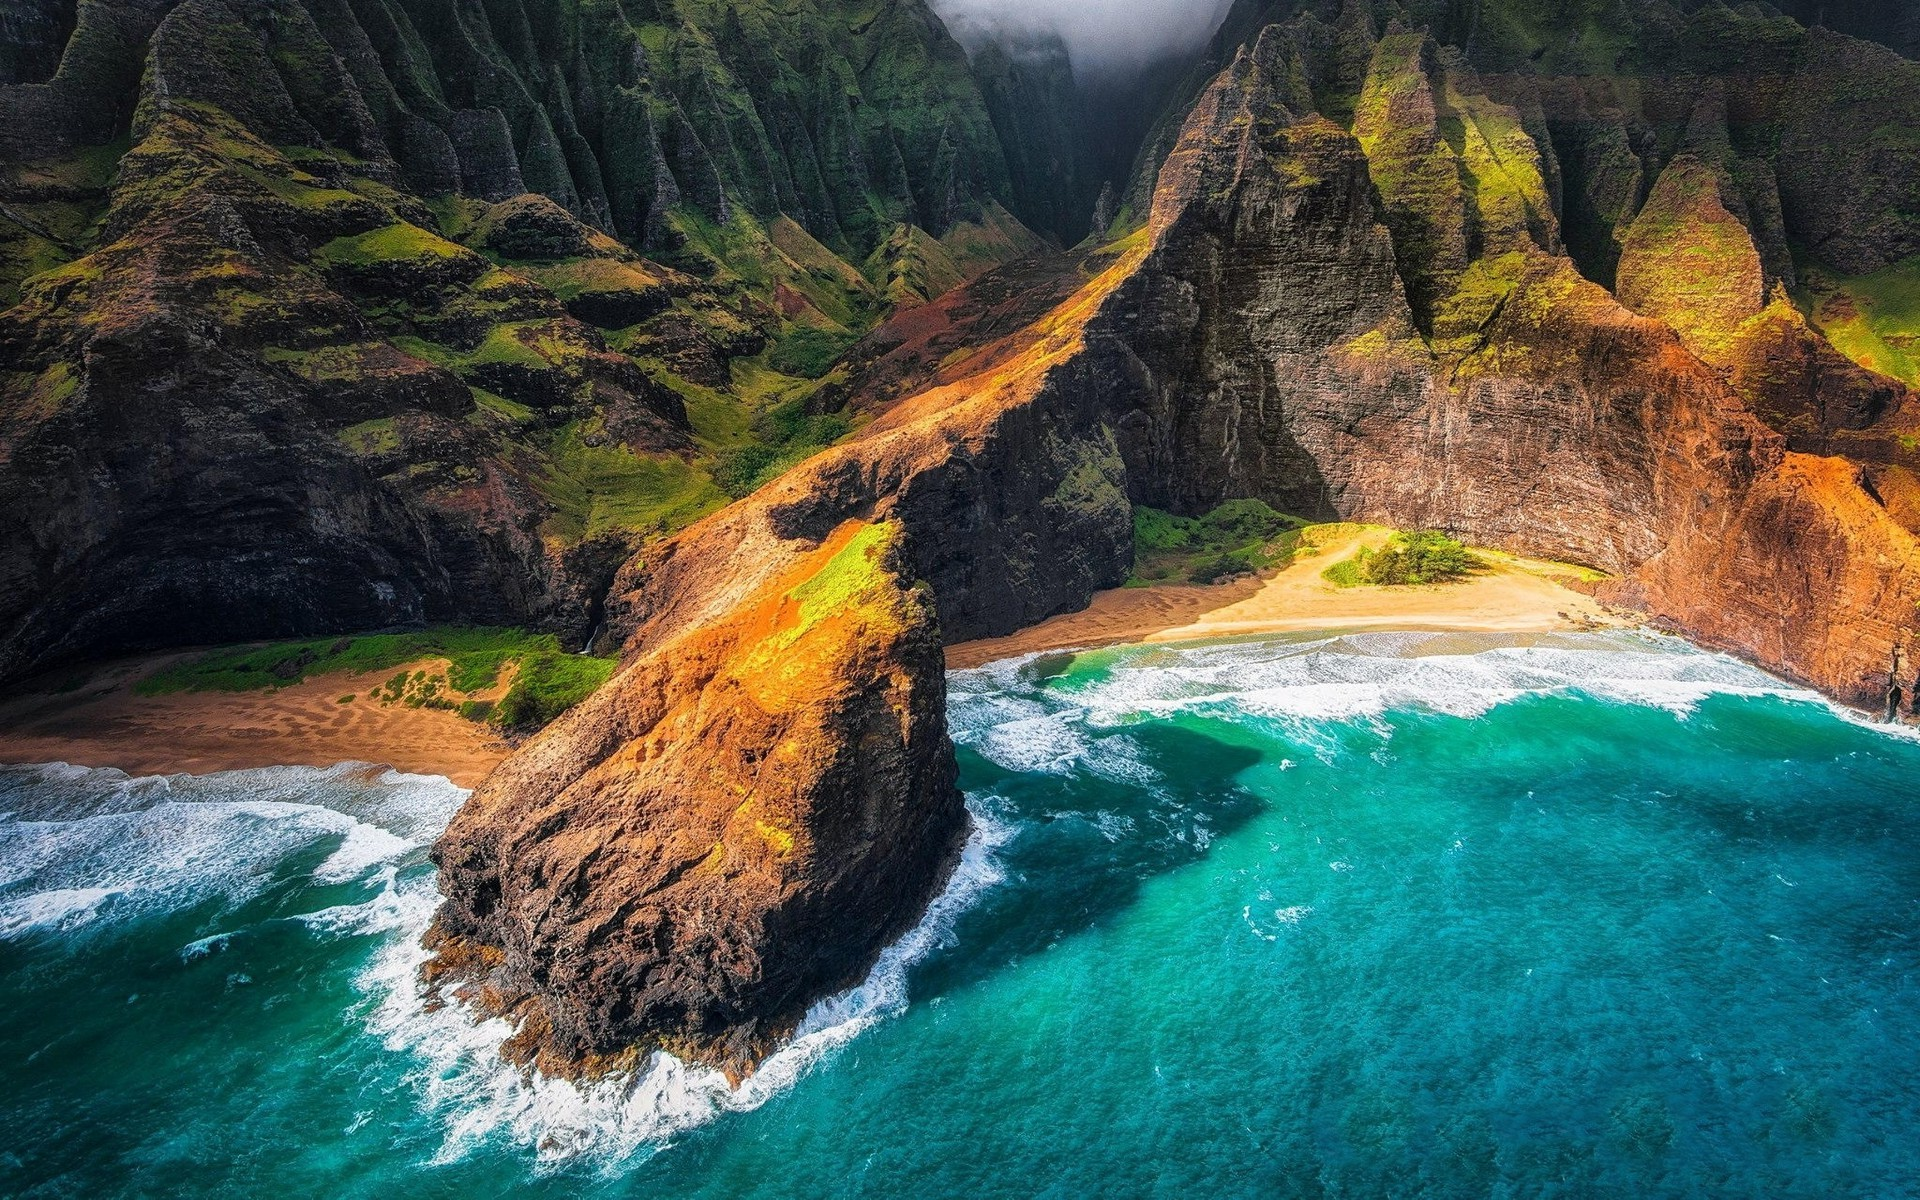 Hawaii Wallpapers Hd: Hawaii Beach Pictures Wallpapers (57+ Images